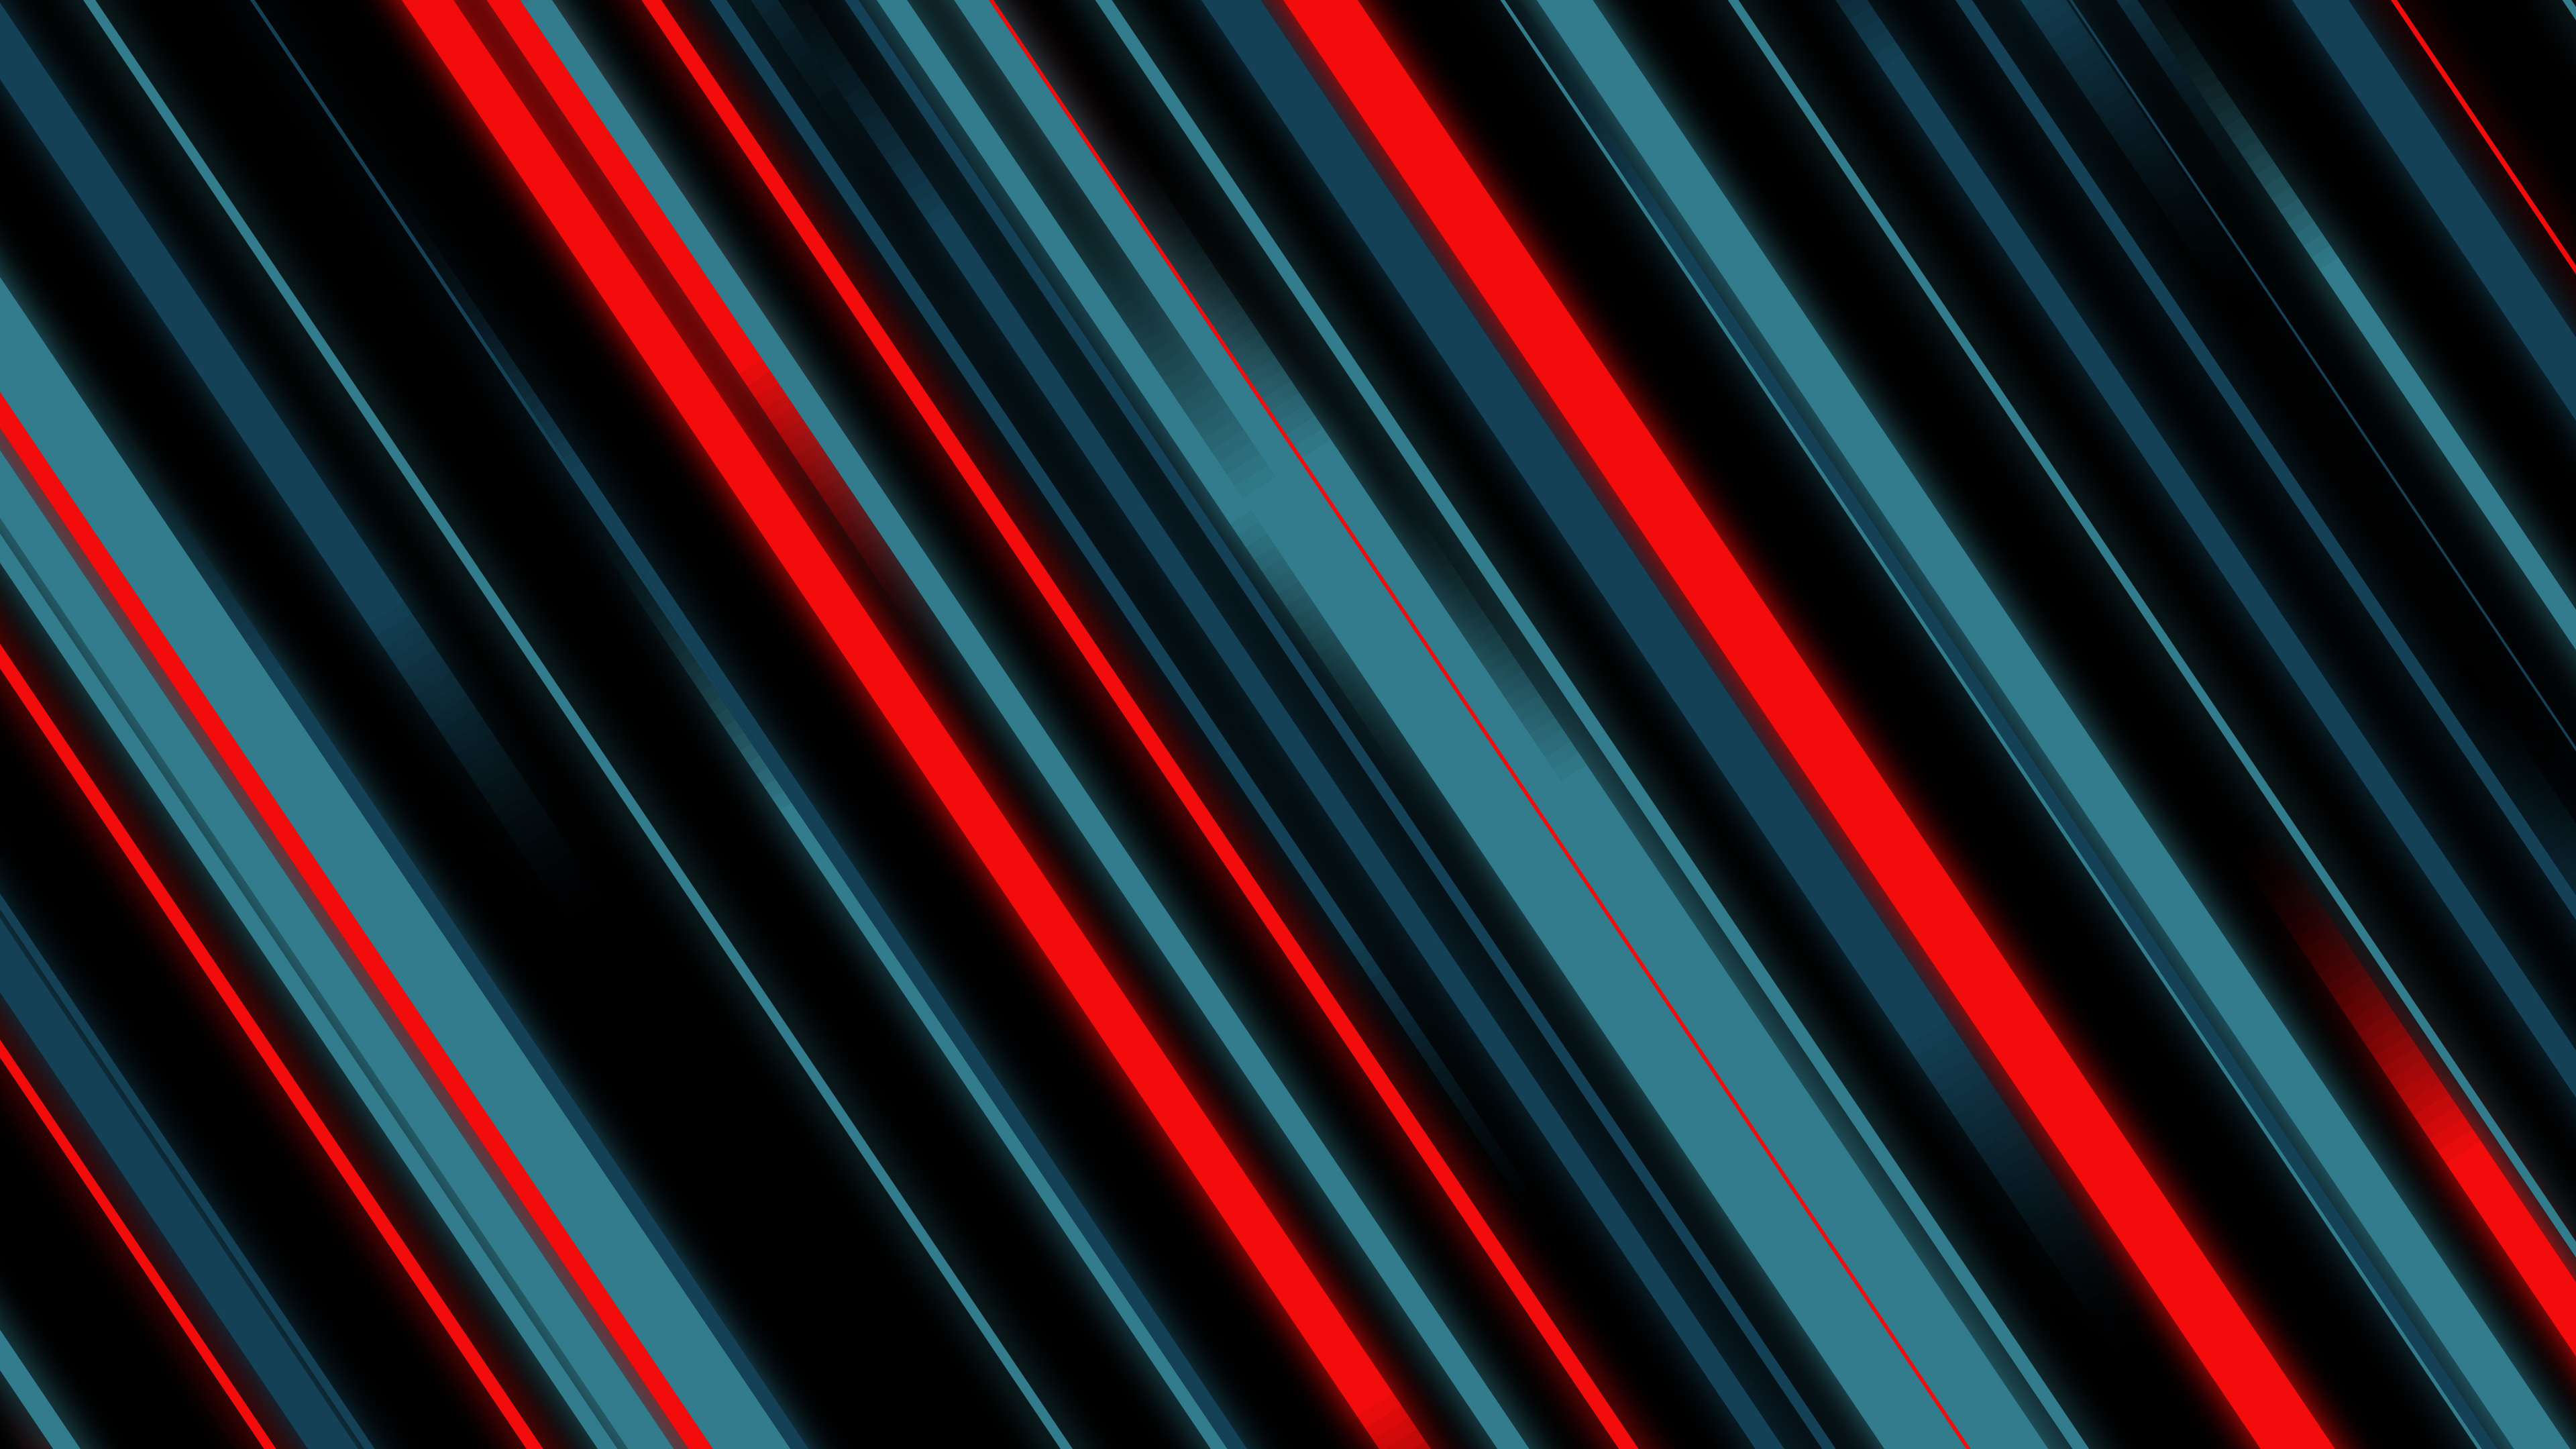 material style lines abstract 4k 1539371321 - Material Style Lines Abstract 4k - material wallpapers, lines wallpapers, hd-wallpapers, digital art wallpapers, design wallpapers, artist wallpapers, android wallpapers, abstract wallpapers, 4k-wallpapers